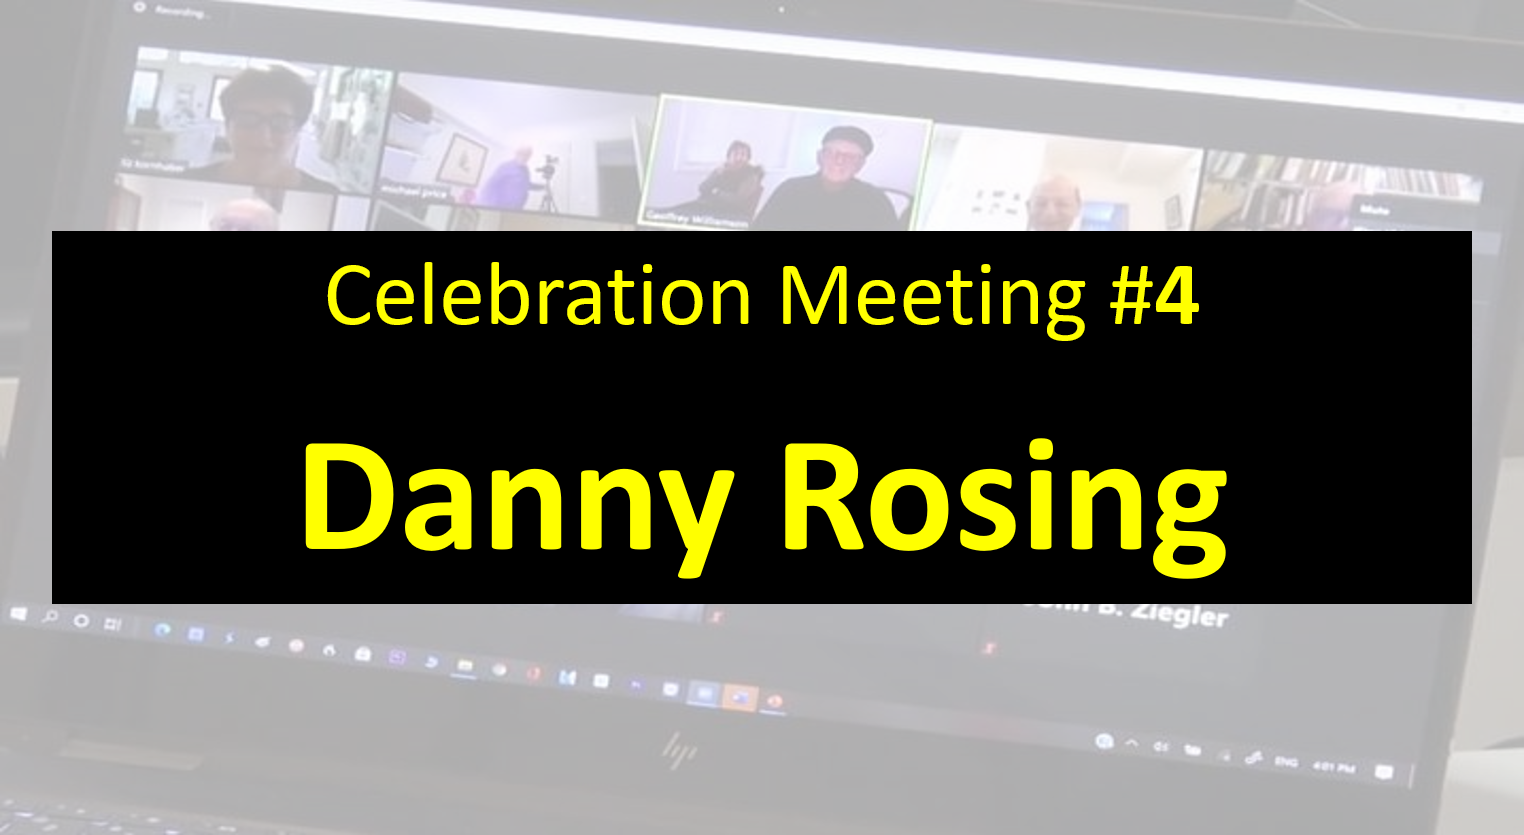 Celebration Meeting - #4 Danny Rosing